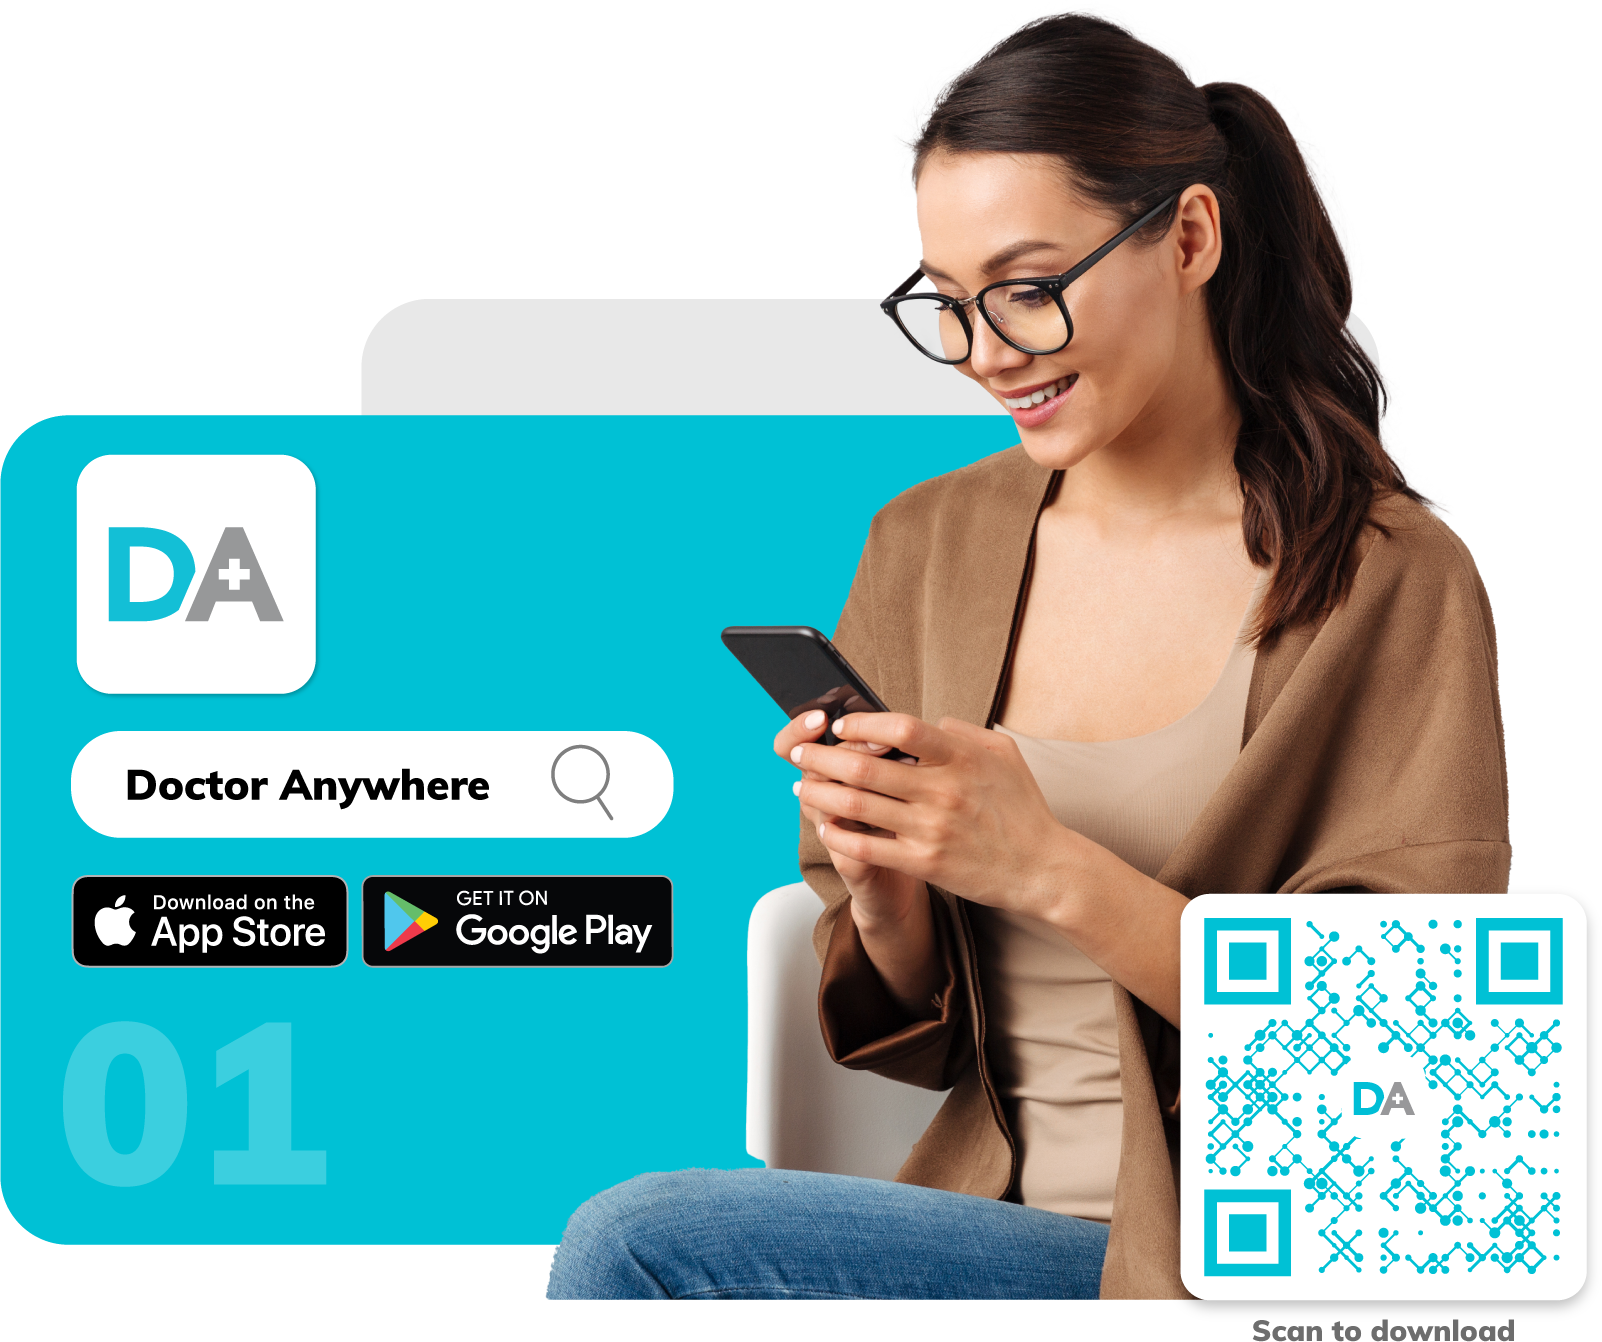 Download Doctor Anywhere from the App Store or Google Play, and sign up with your email, Facebook, or Google ID.